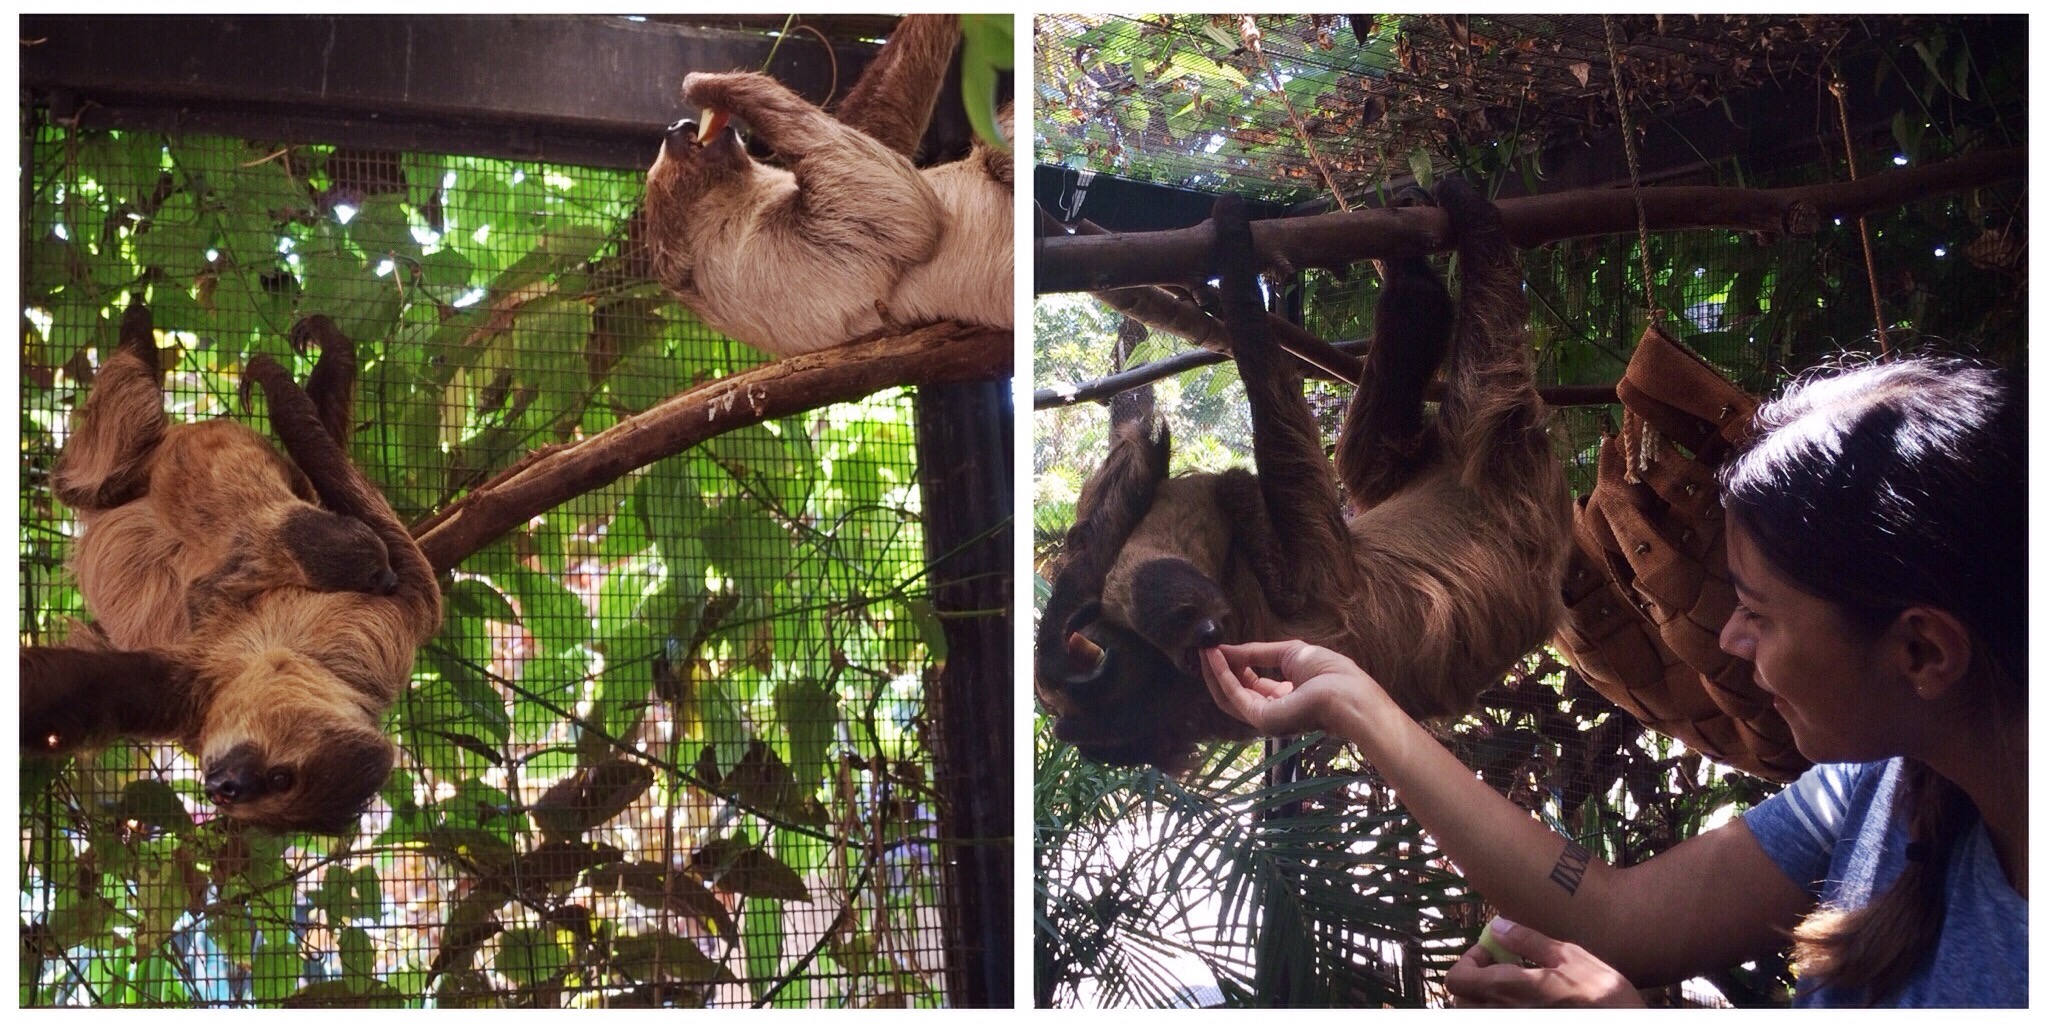 Honolulu Zoo - Harriet the Linnaeus's two-toed sloth introduced me to her offspring that was born in April '15. (Top ten favorite moments of my life.)